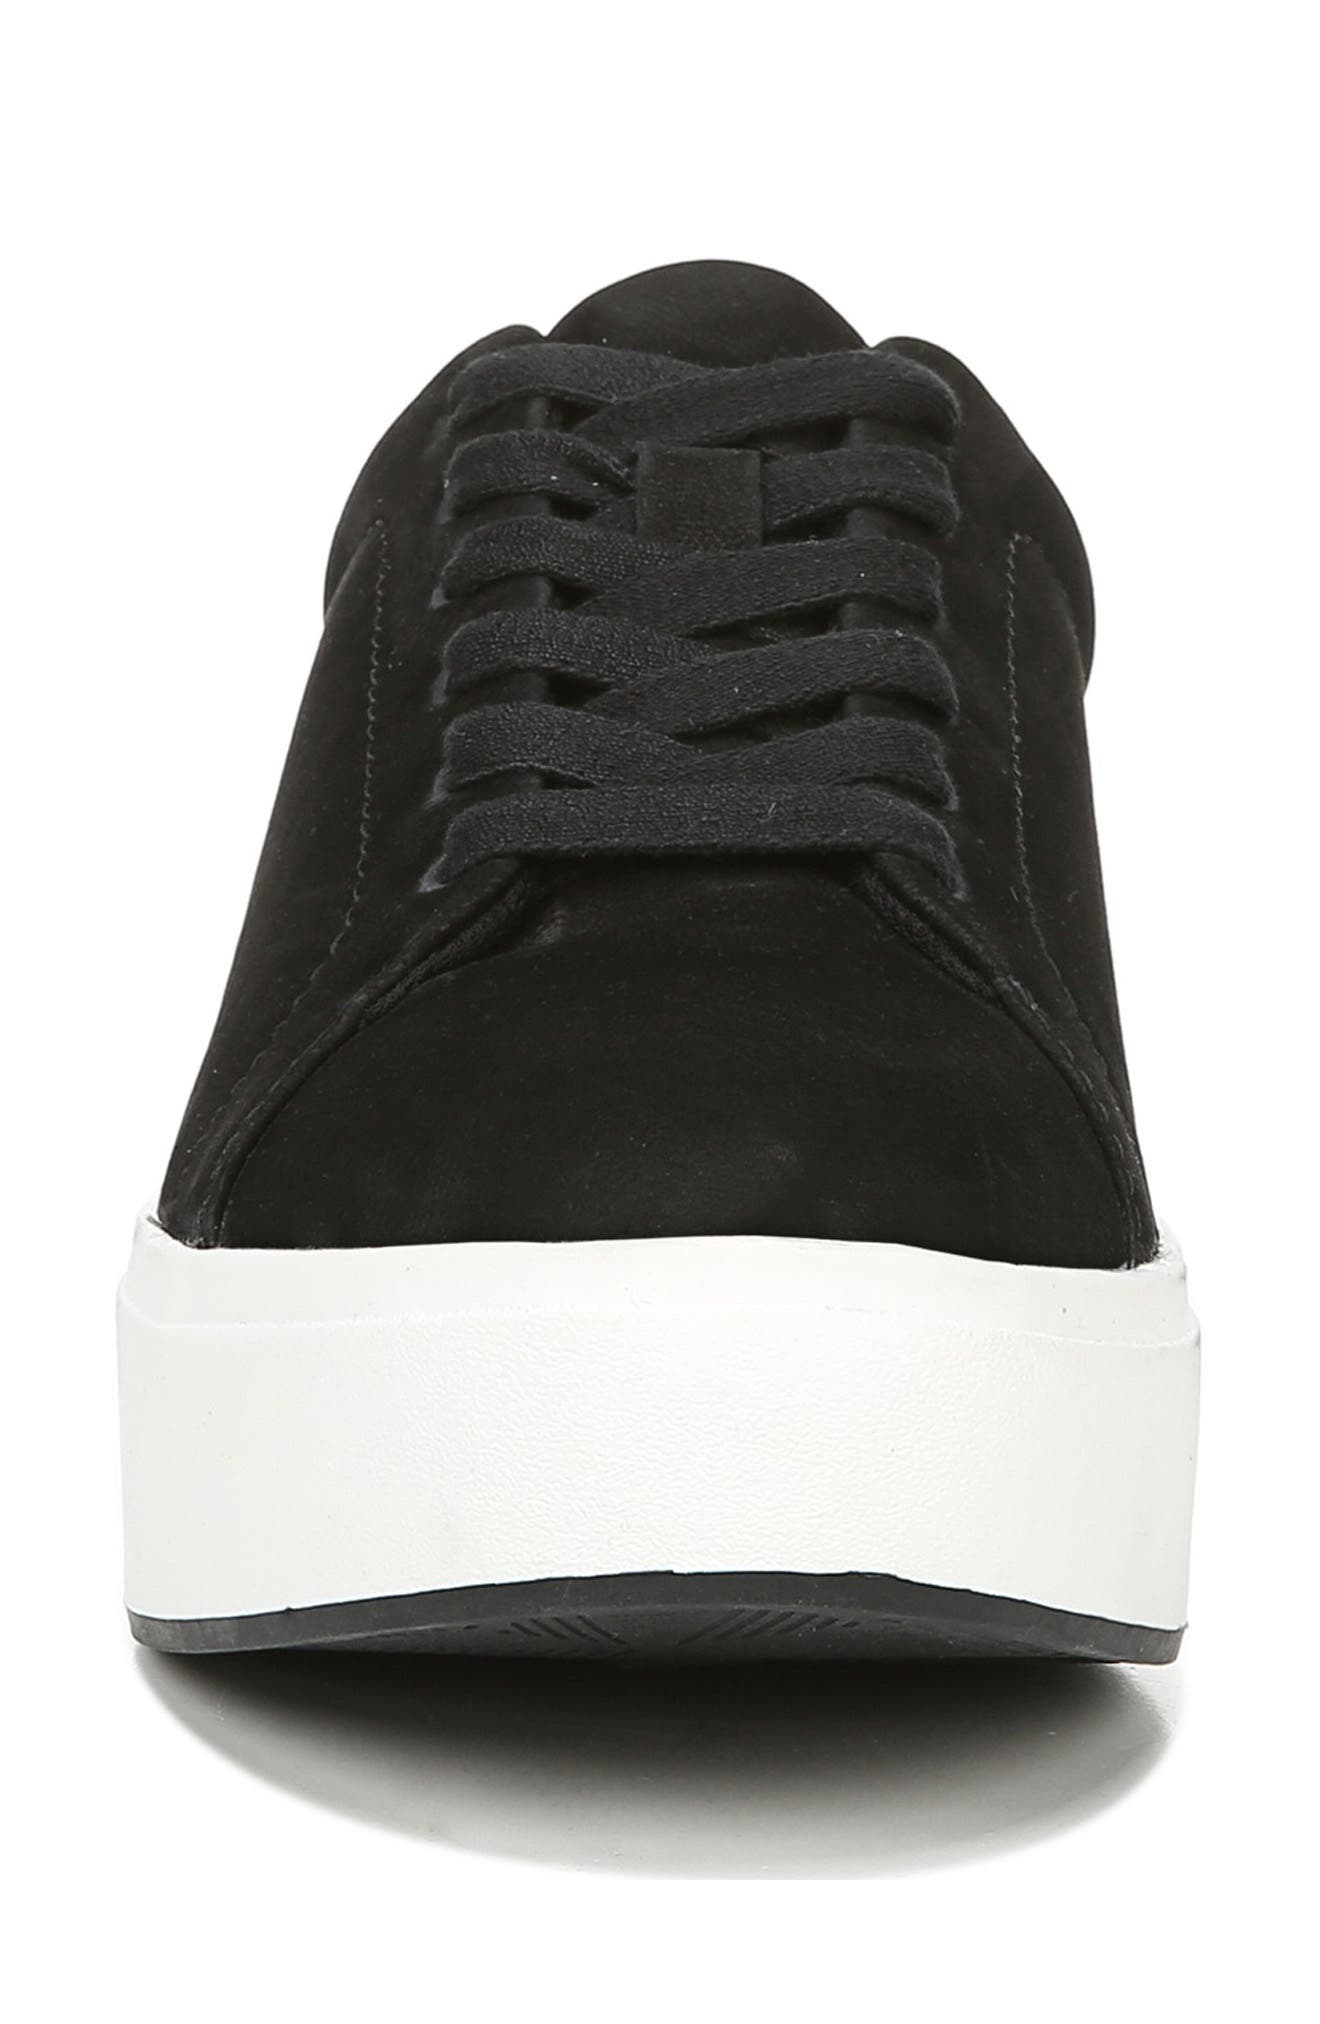 DR. SCHOLL'S, Abbot Luxe Platform Sneaker, Alternate thumbnail 4, color, BLACK SUEDE